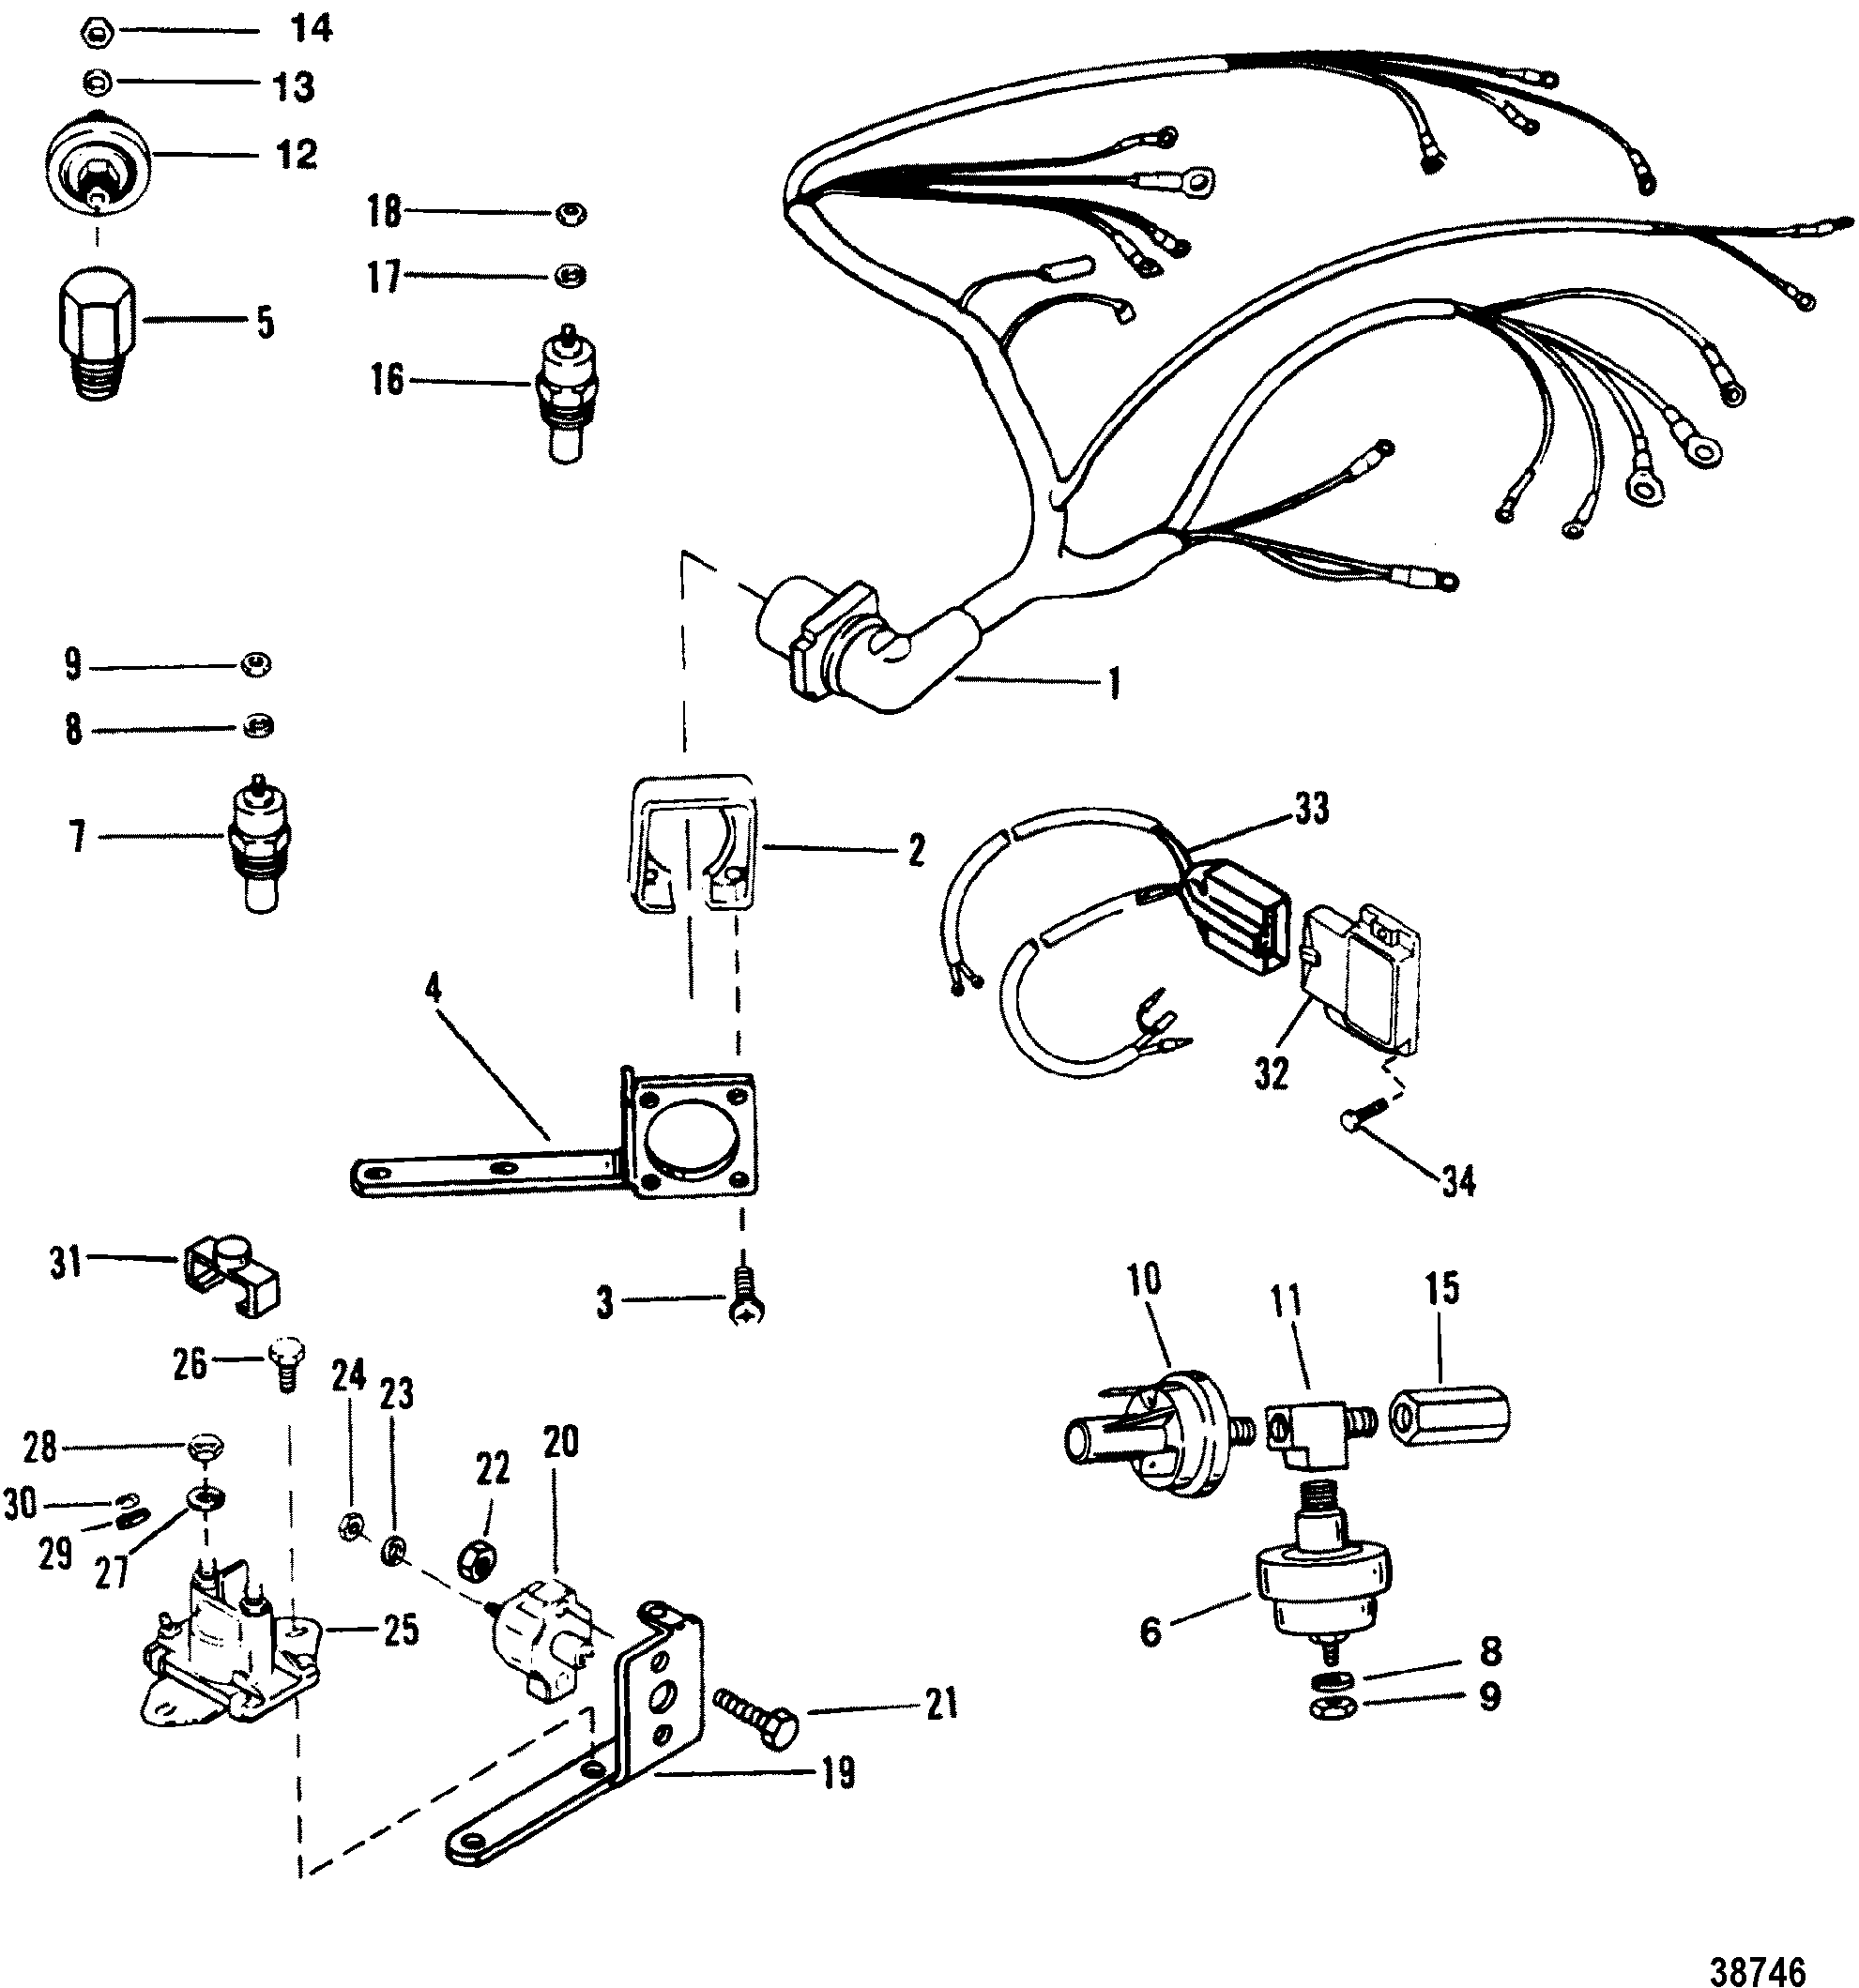 Mercruiser Boat Wiring Harness 30 Diagram Images Diagrams 38746 And Electrical Components For 4 3l 3lx